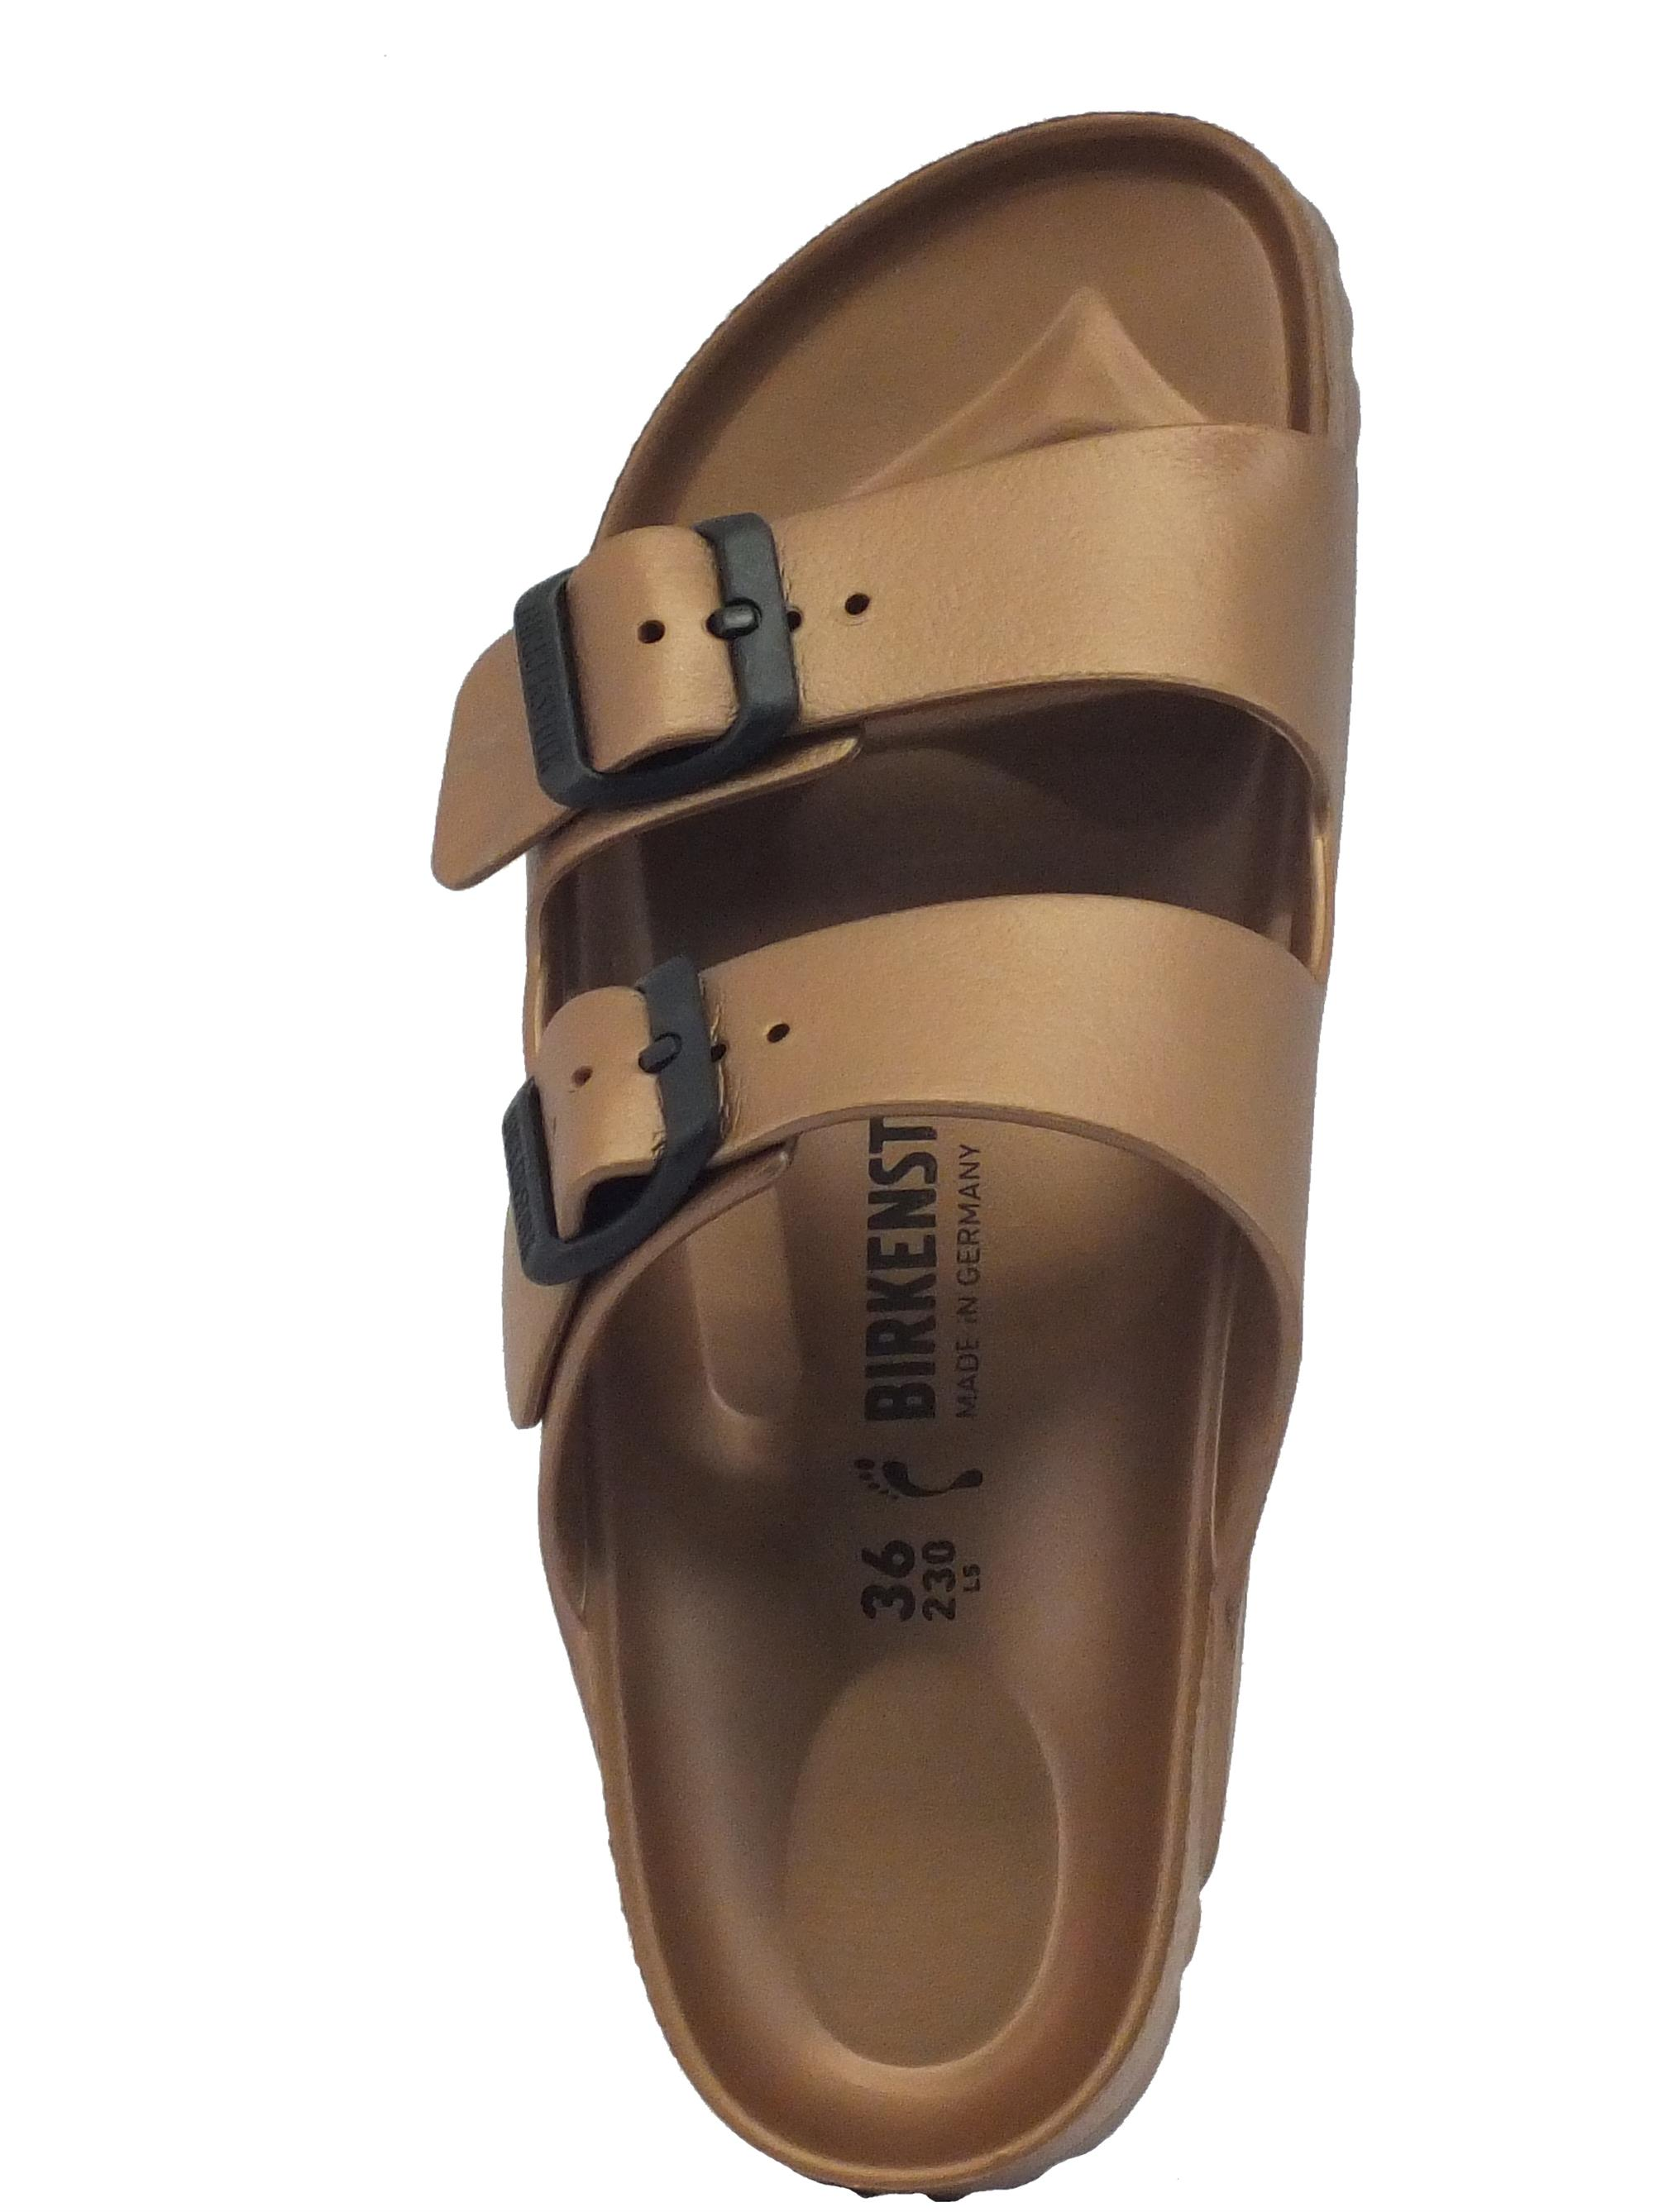 Sandali Birkenstock Arizona EVA Copper donna - Vitiello Calzature 7766832fee6